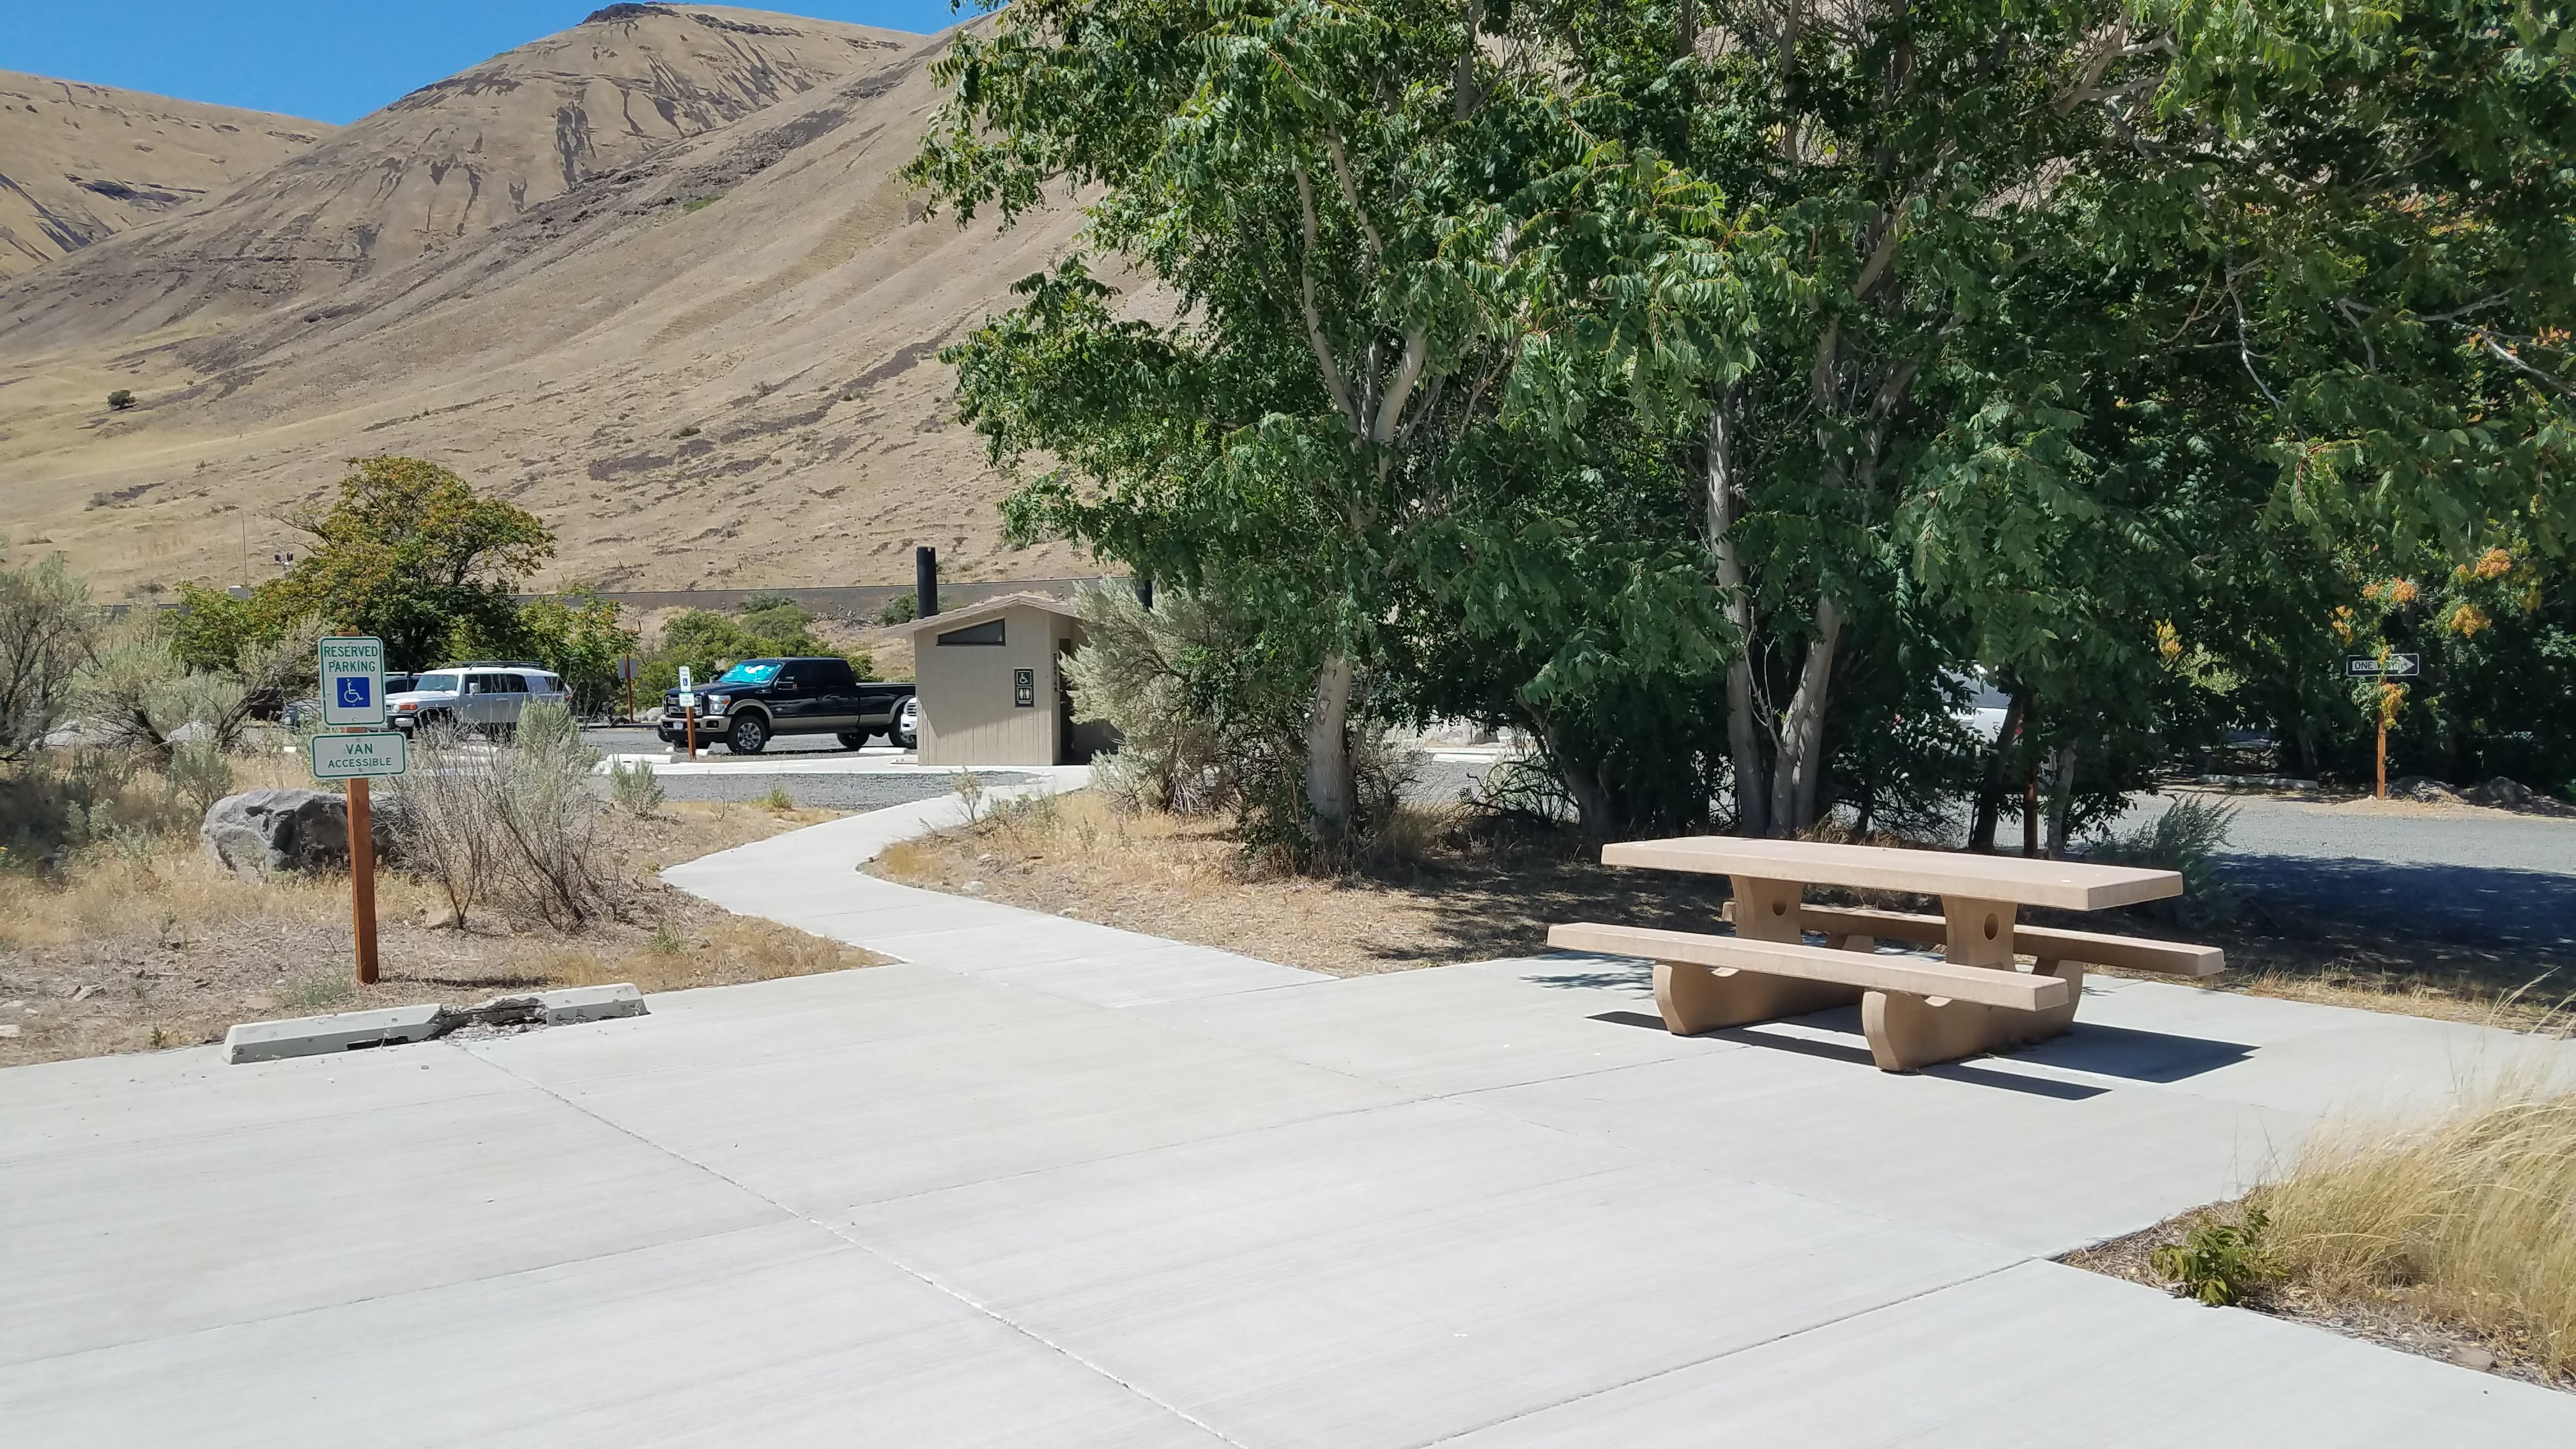 Accessible campsite 20 at Macks Canyon Recreation Site